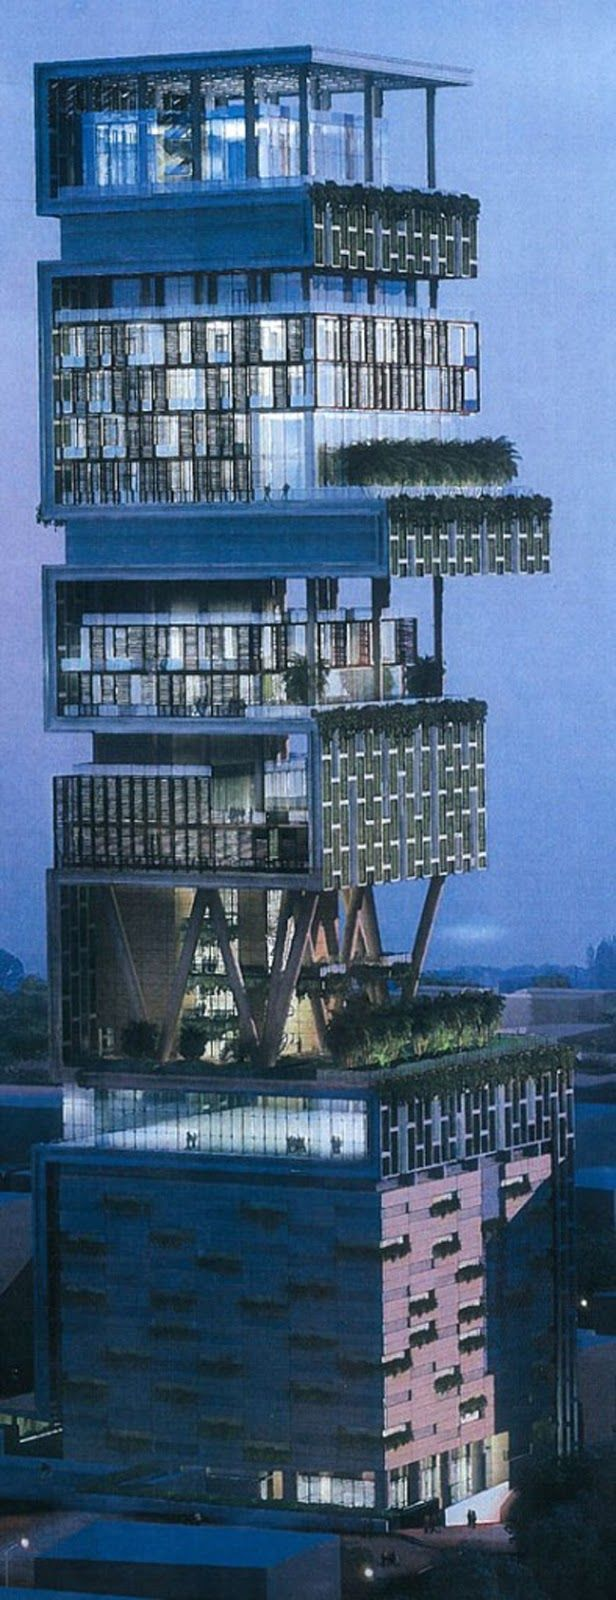 The most expensive house in the worldone billion dollar house in mumbai expensive homesmost expensiveamazing architecturemodern